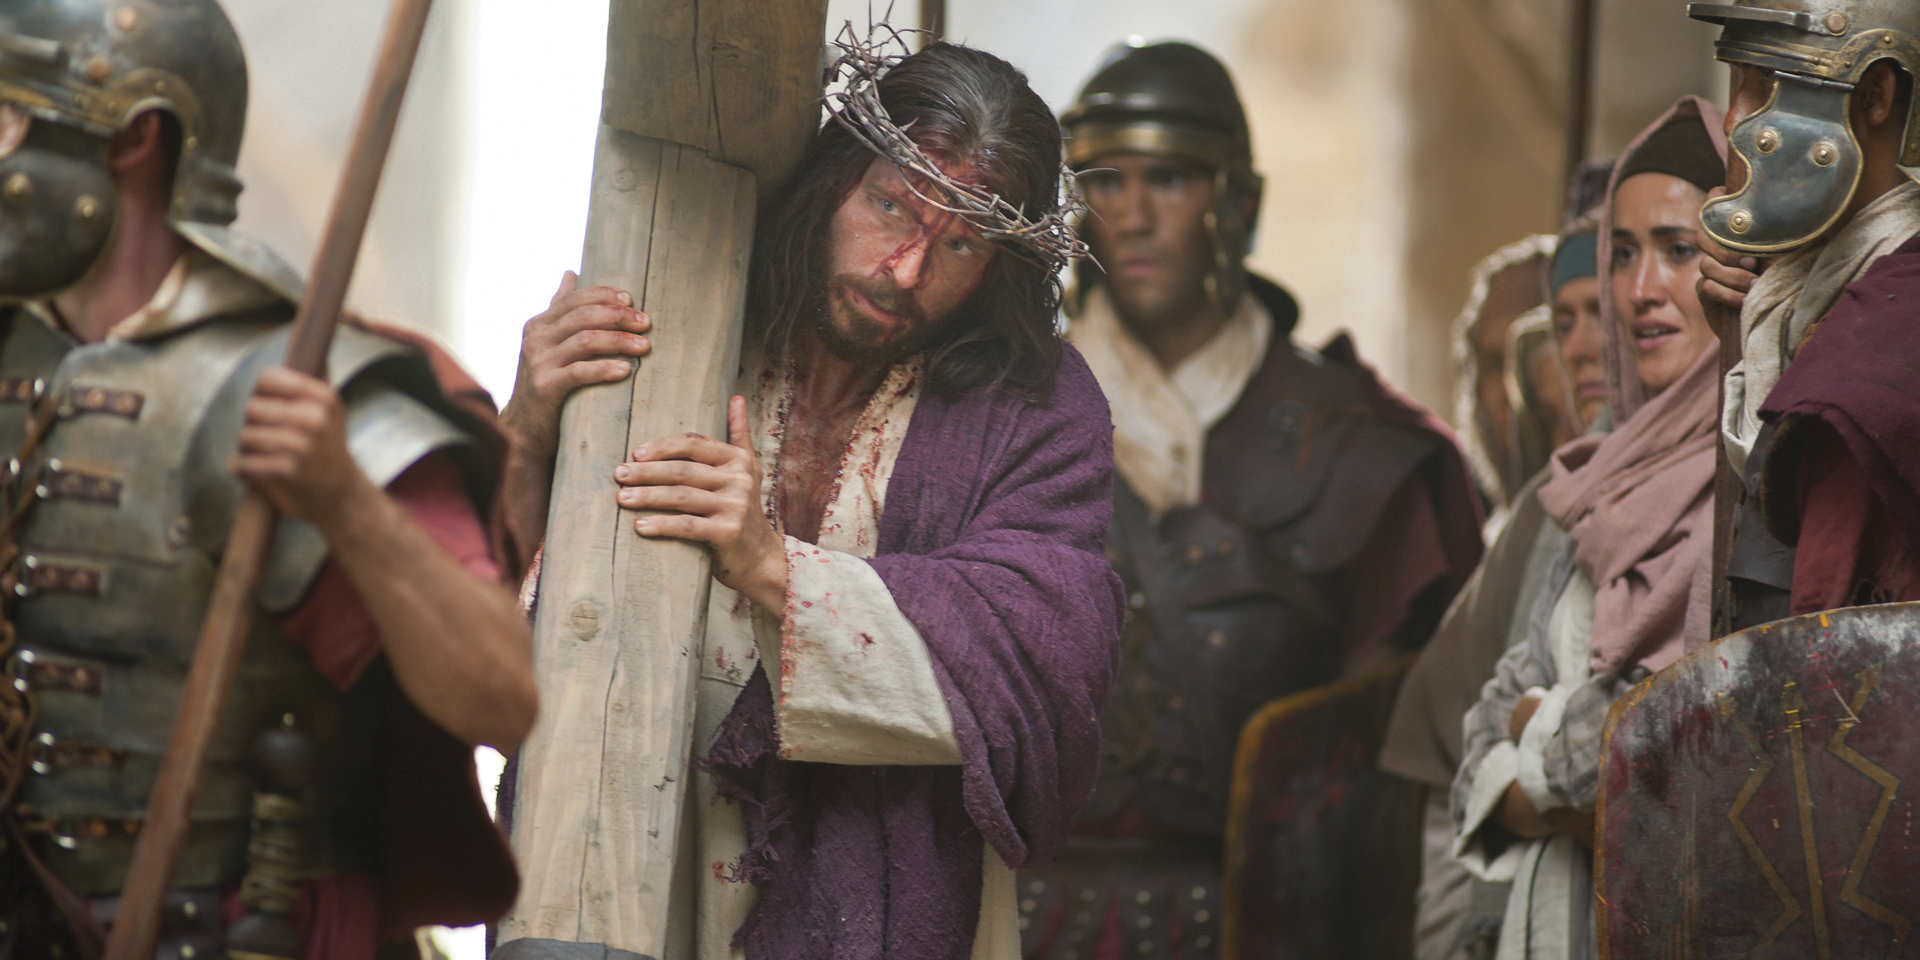 Jesus carries His cross on the way to His Crucifixion.